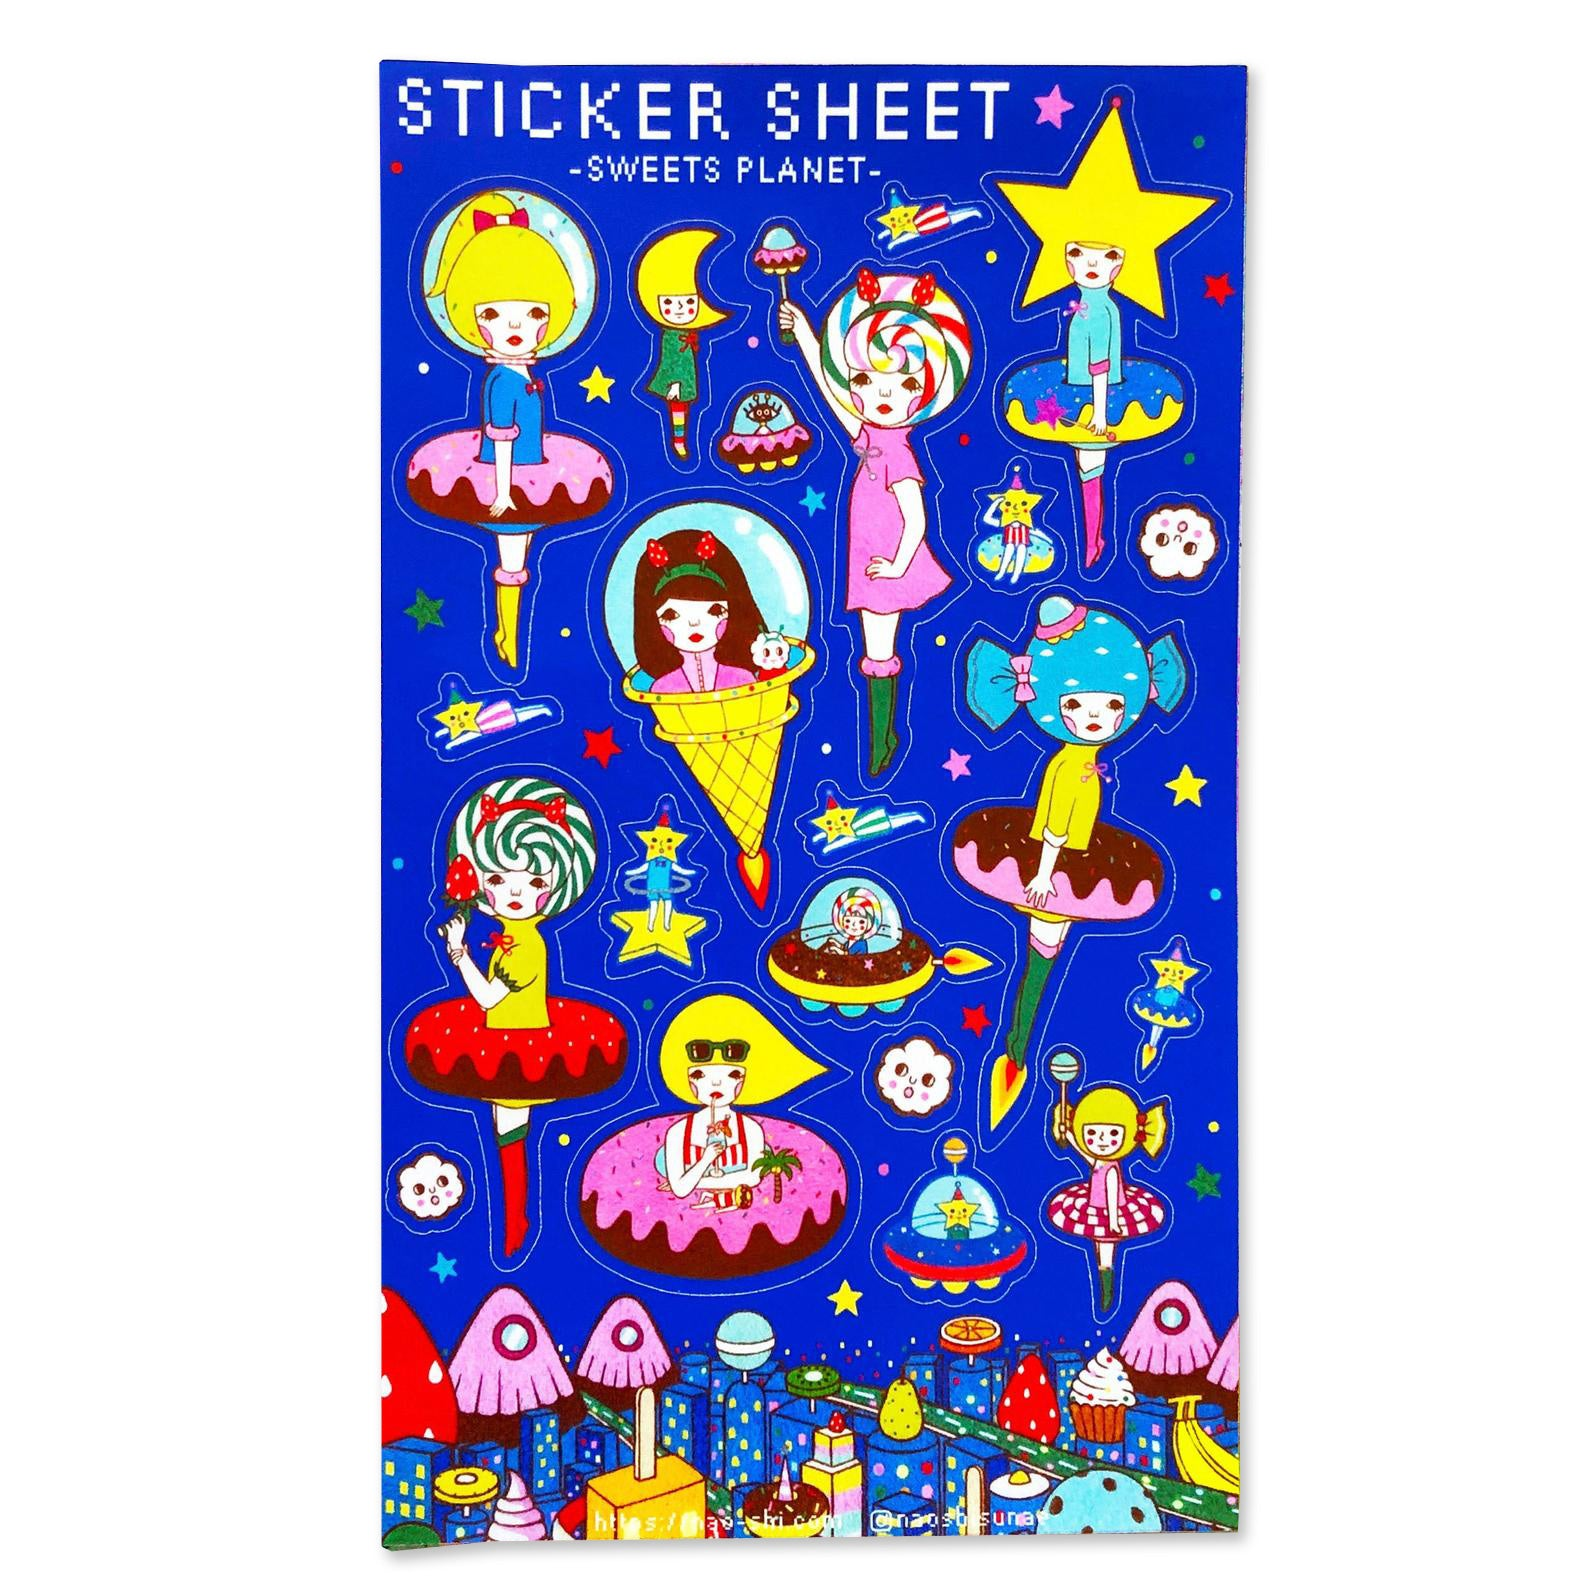 Sweets Planet Sticker Sheet